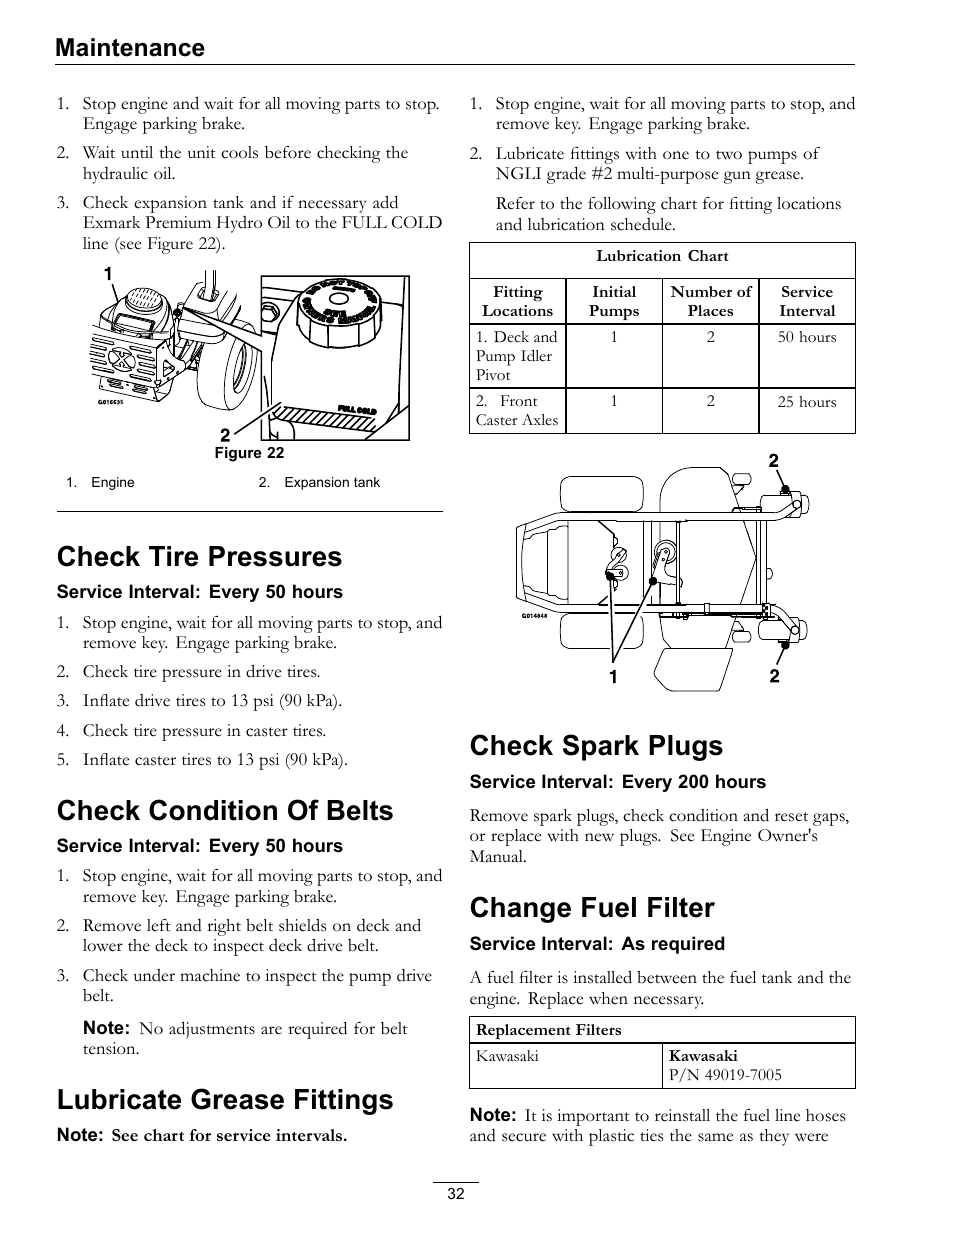 Check tire pressures, Check condition of belts, Lubricate